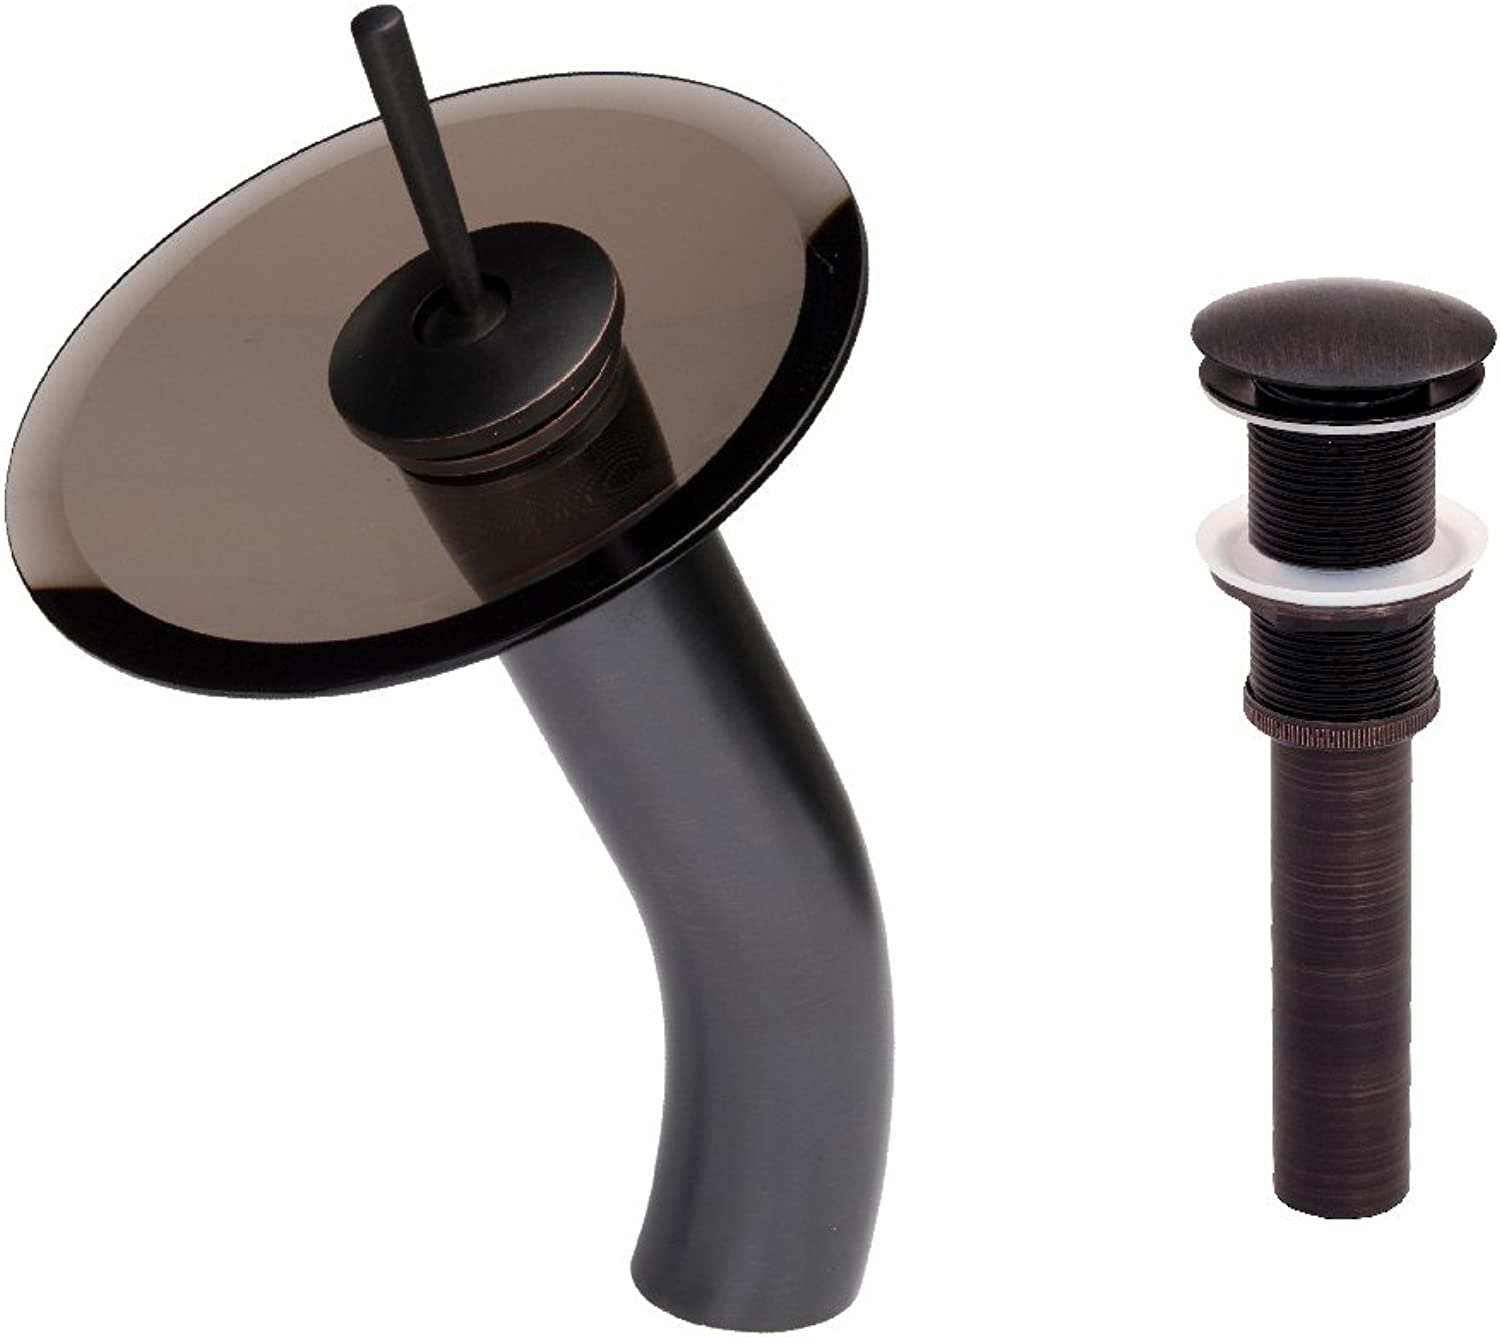 Novatto GF-001ORB-T-PUD Brown Glass Waterfall Vessel Faucet and Pop-up Drain, Oil Rubbed Bronze